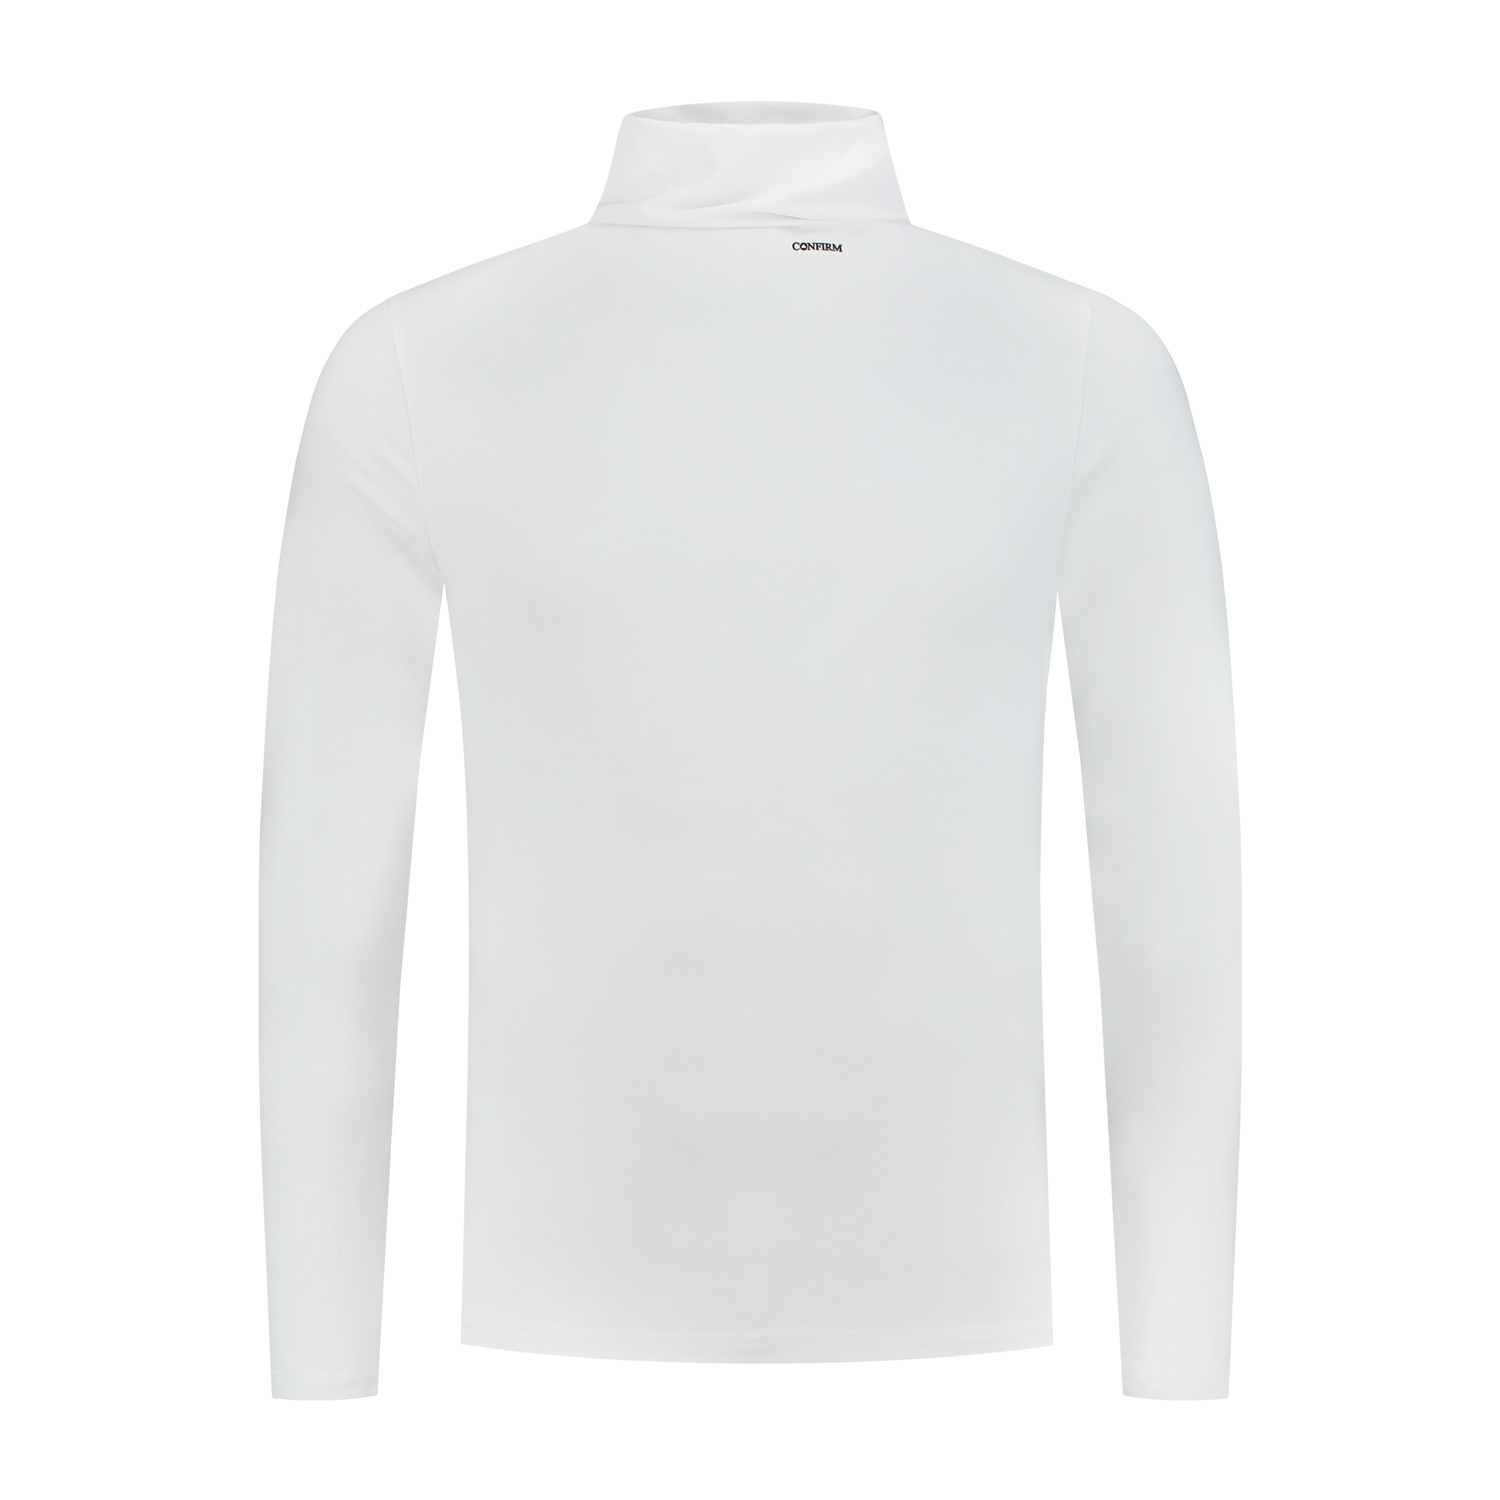 Confirm | Basic Turtleneck Confirm - Wit-1